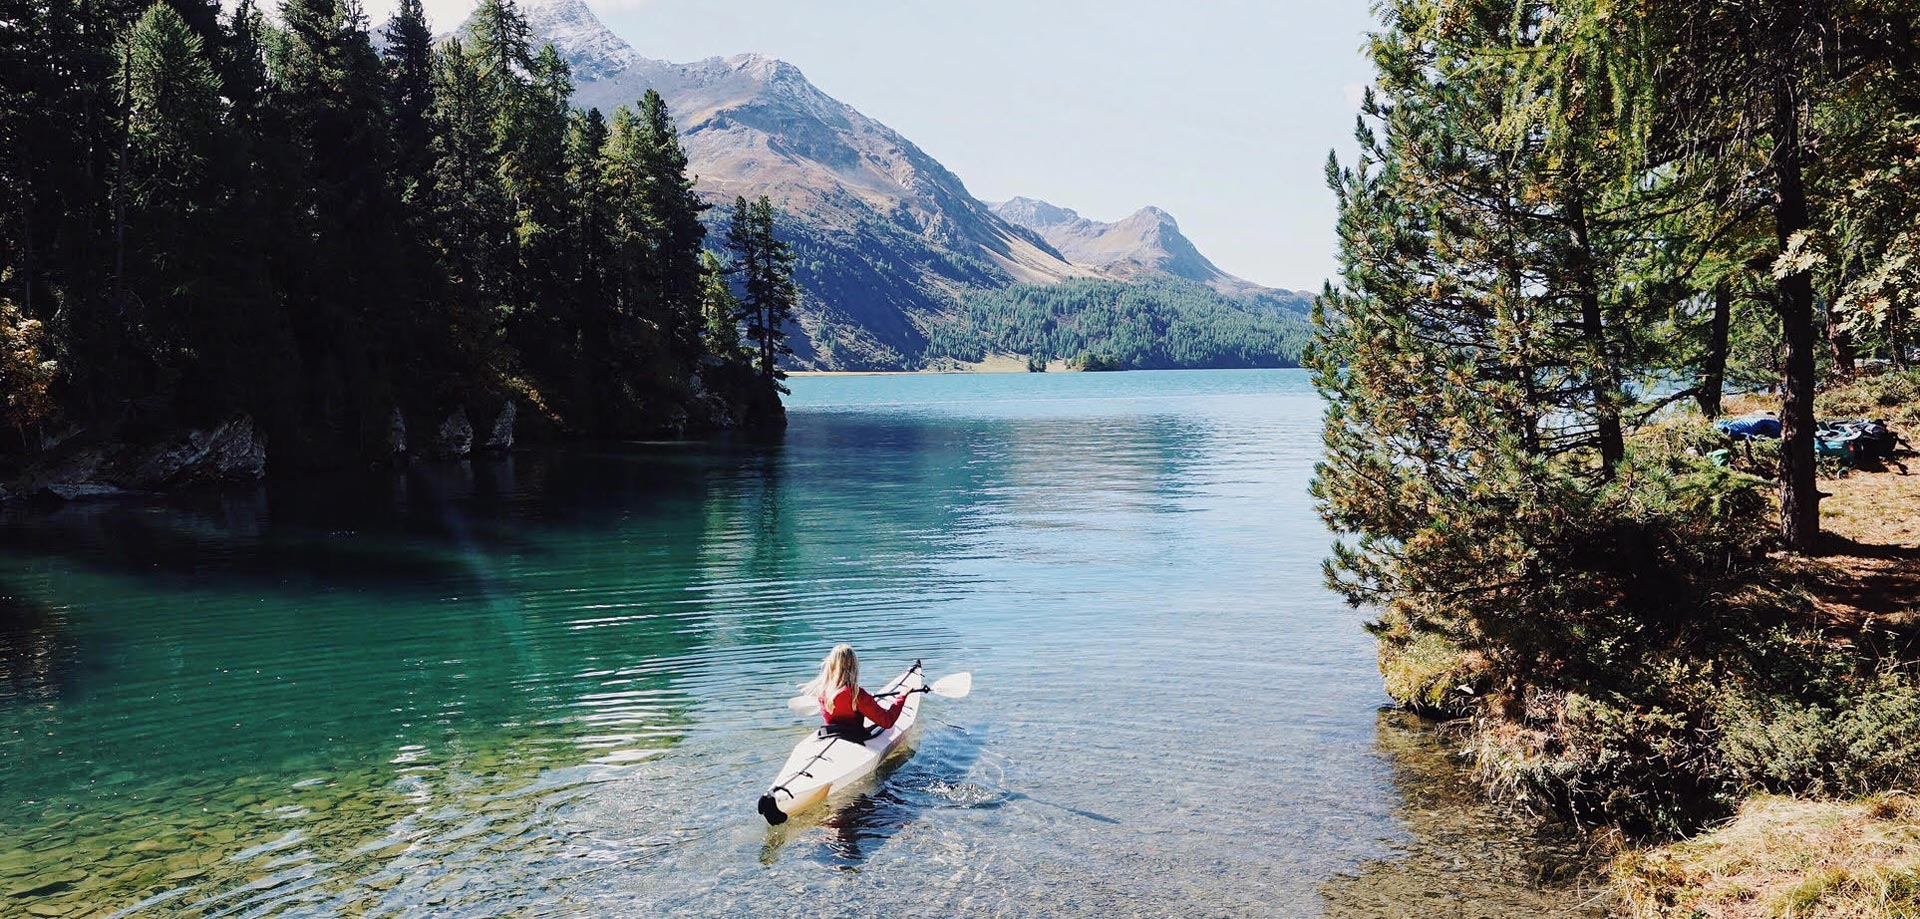 Woman kayaking in beautiful alpine lake